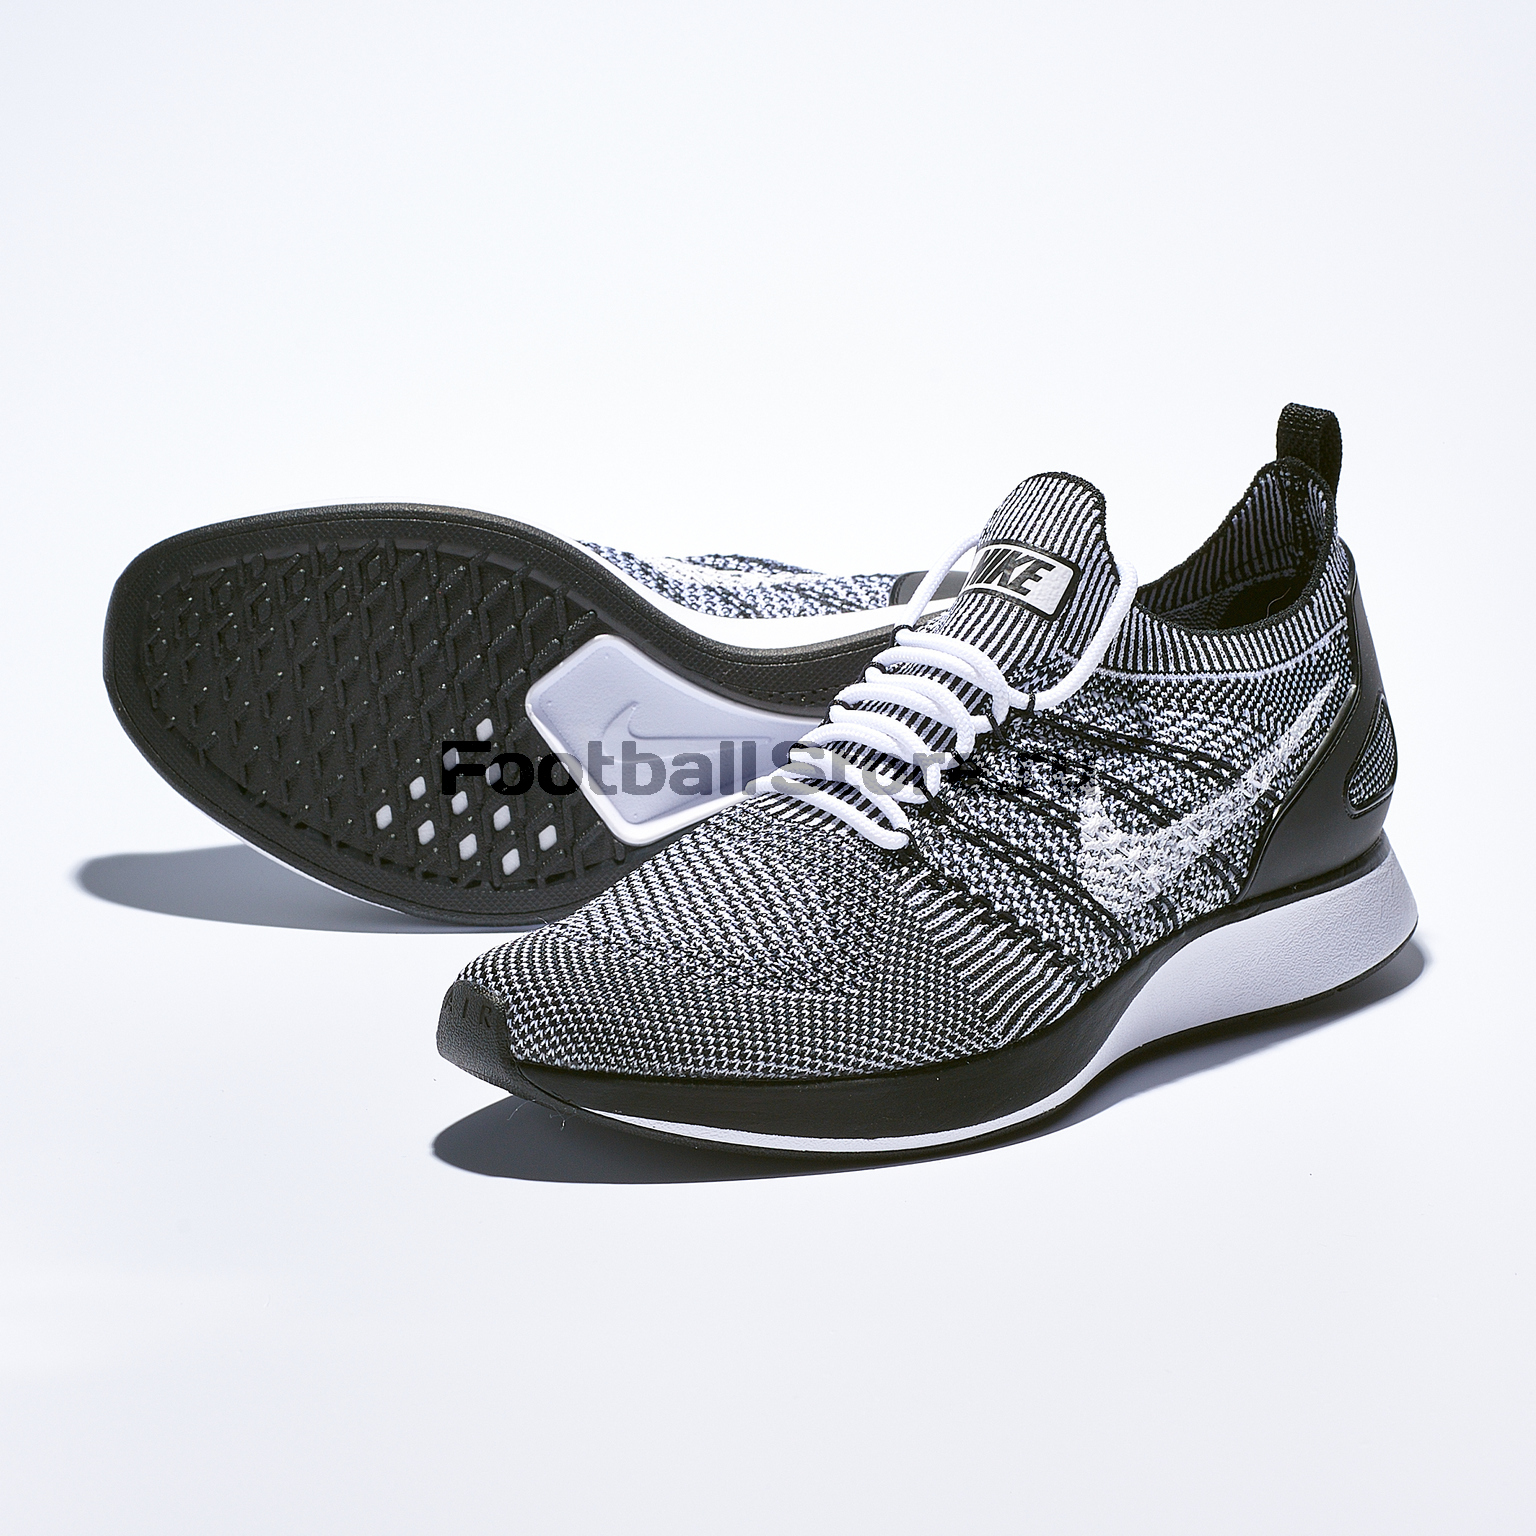 Кроссовки Nike Air Zoom Mariah Flyknit Racer 918264-102 кроссовки nike air zoom structure 21 shield 907324 001